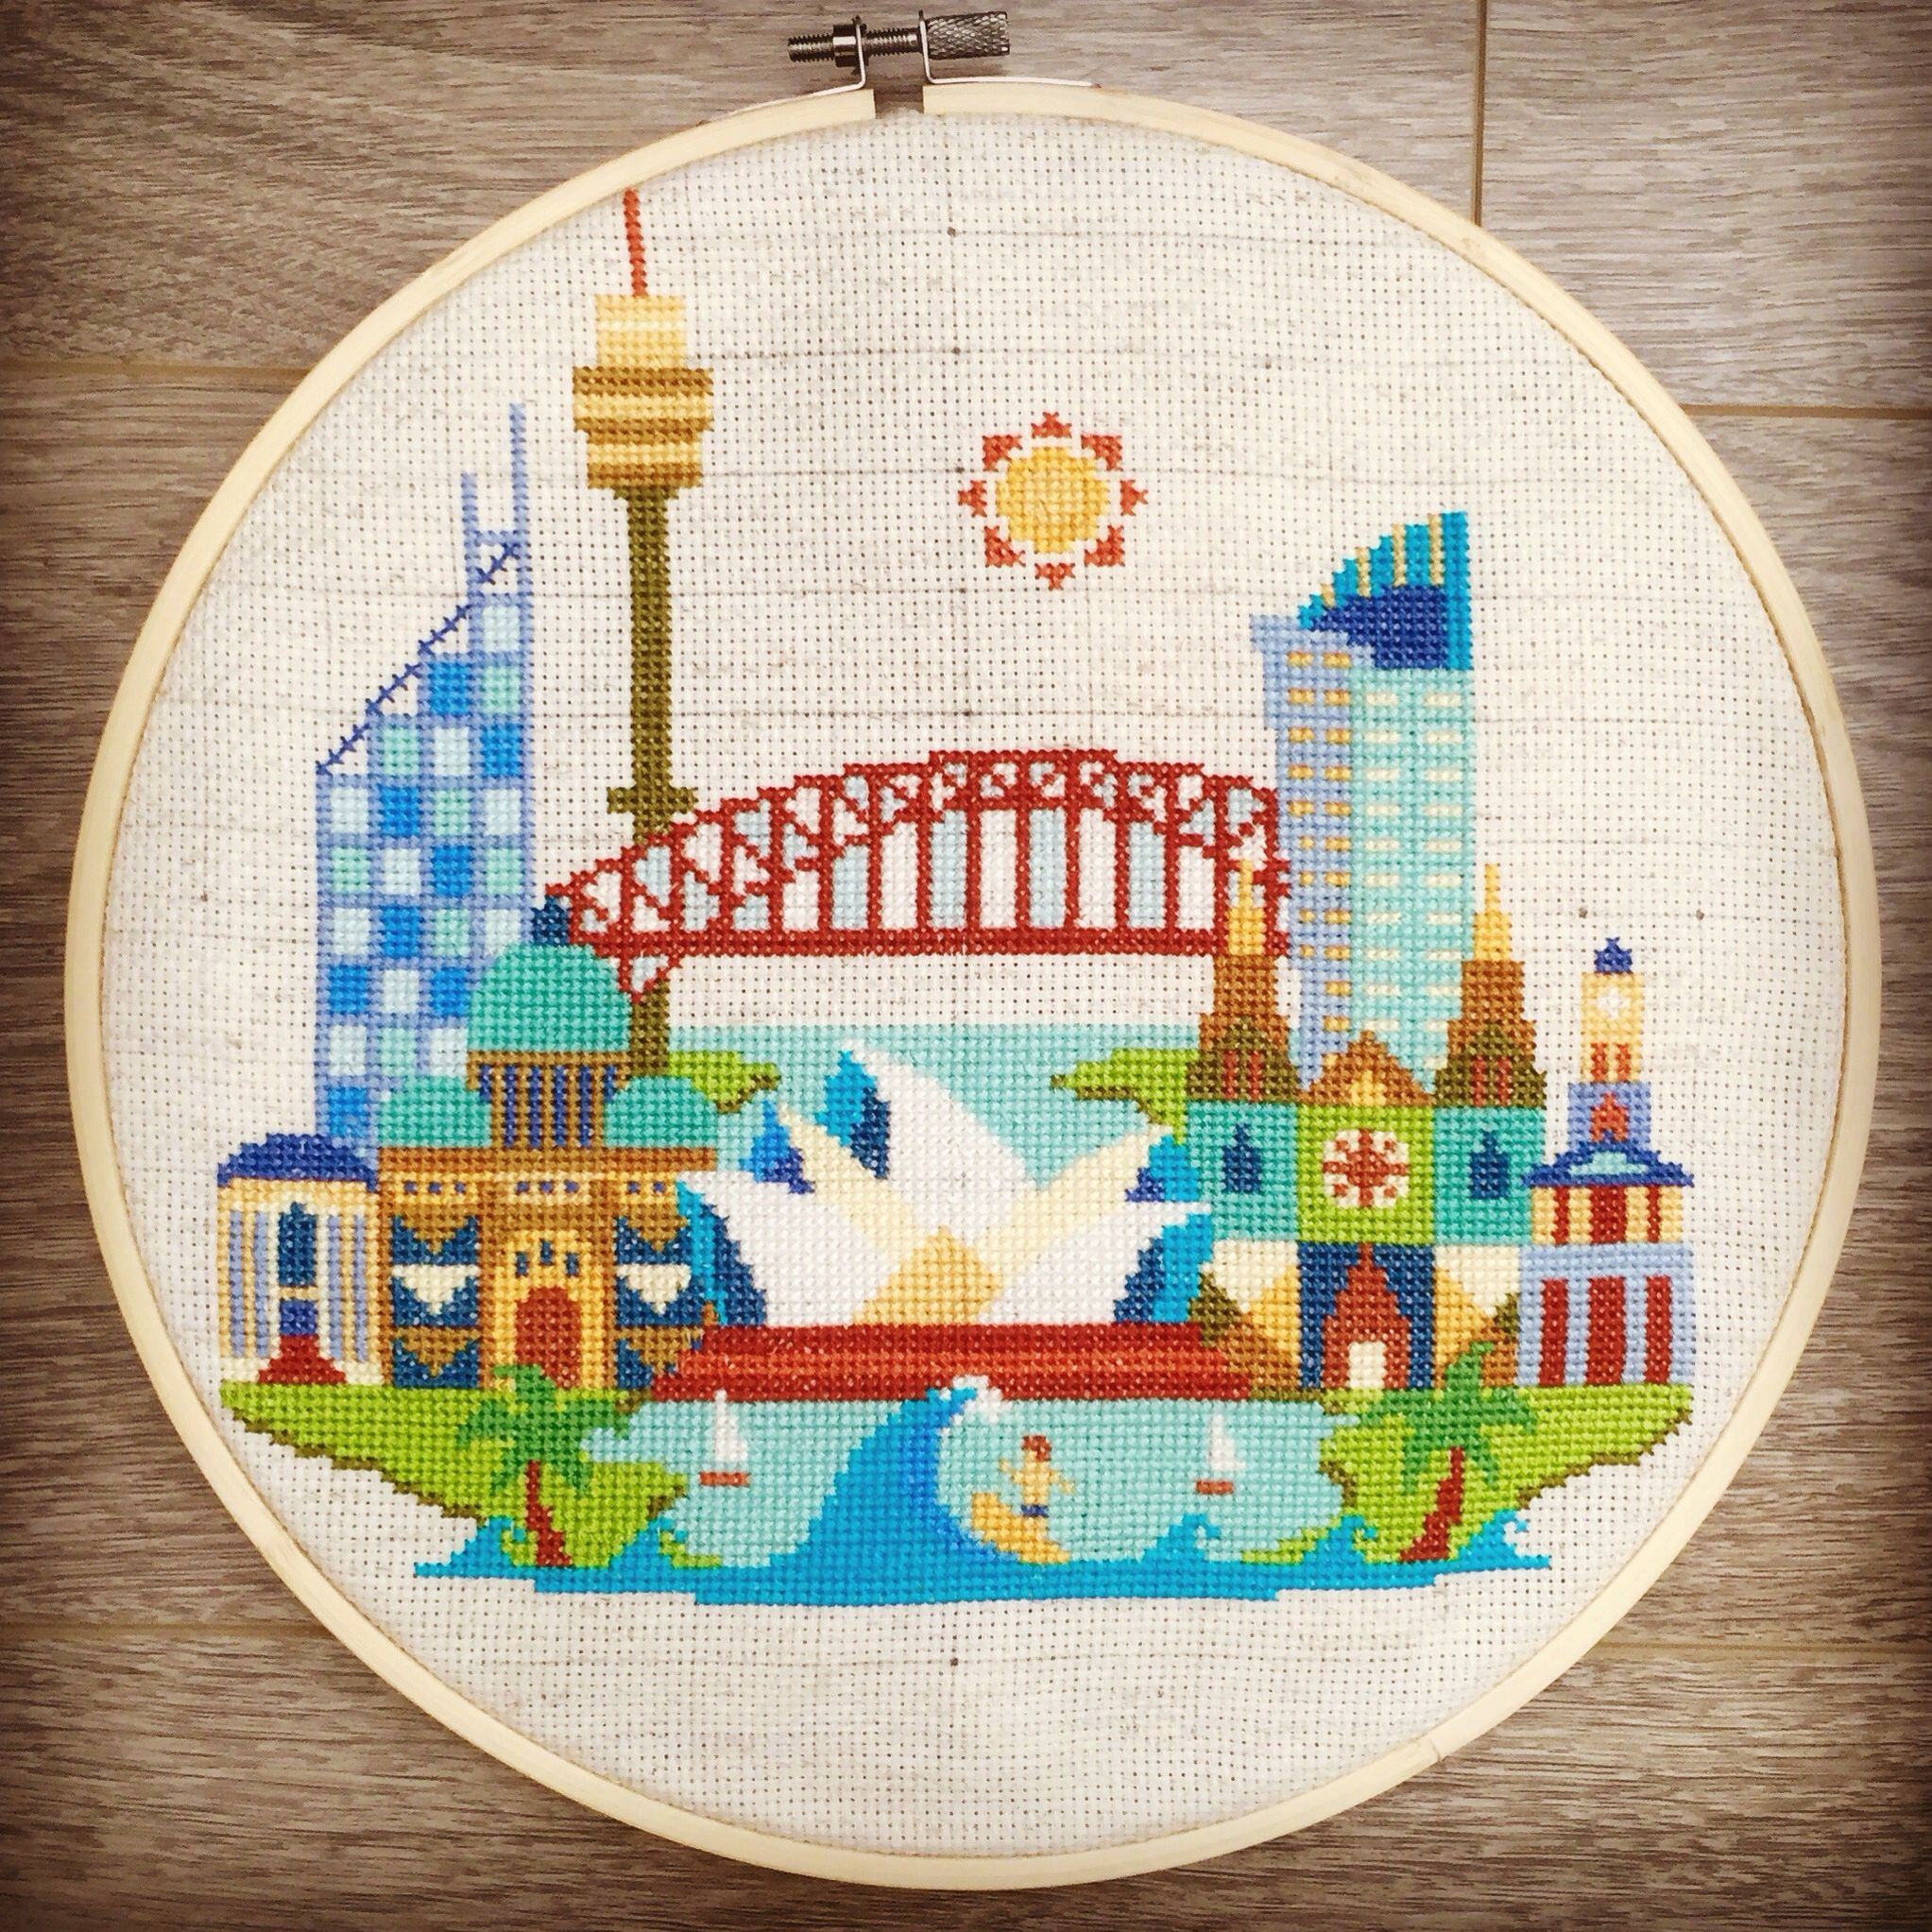 Just Finished My First Cross Stitch Project Pretty Little Sydney